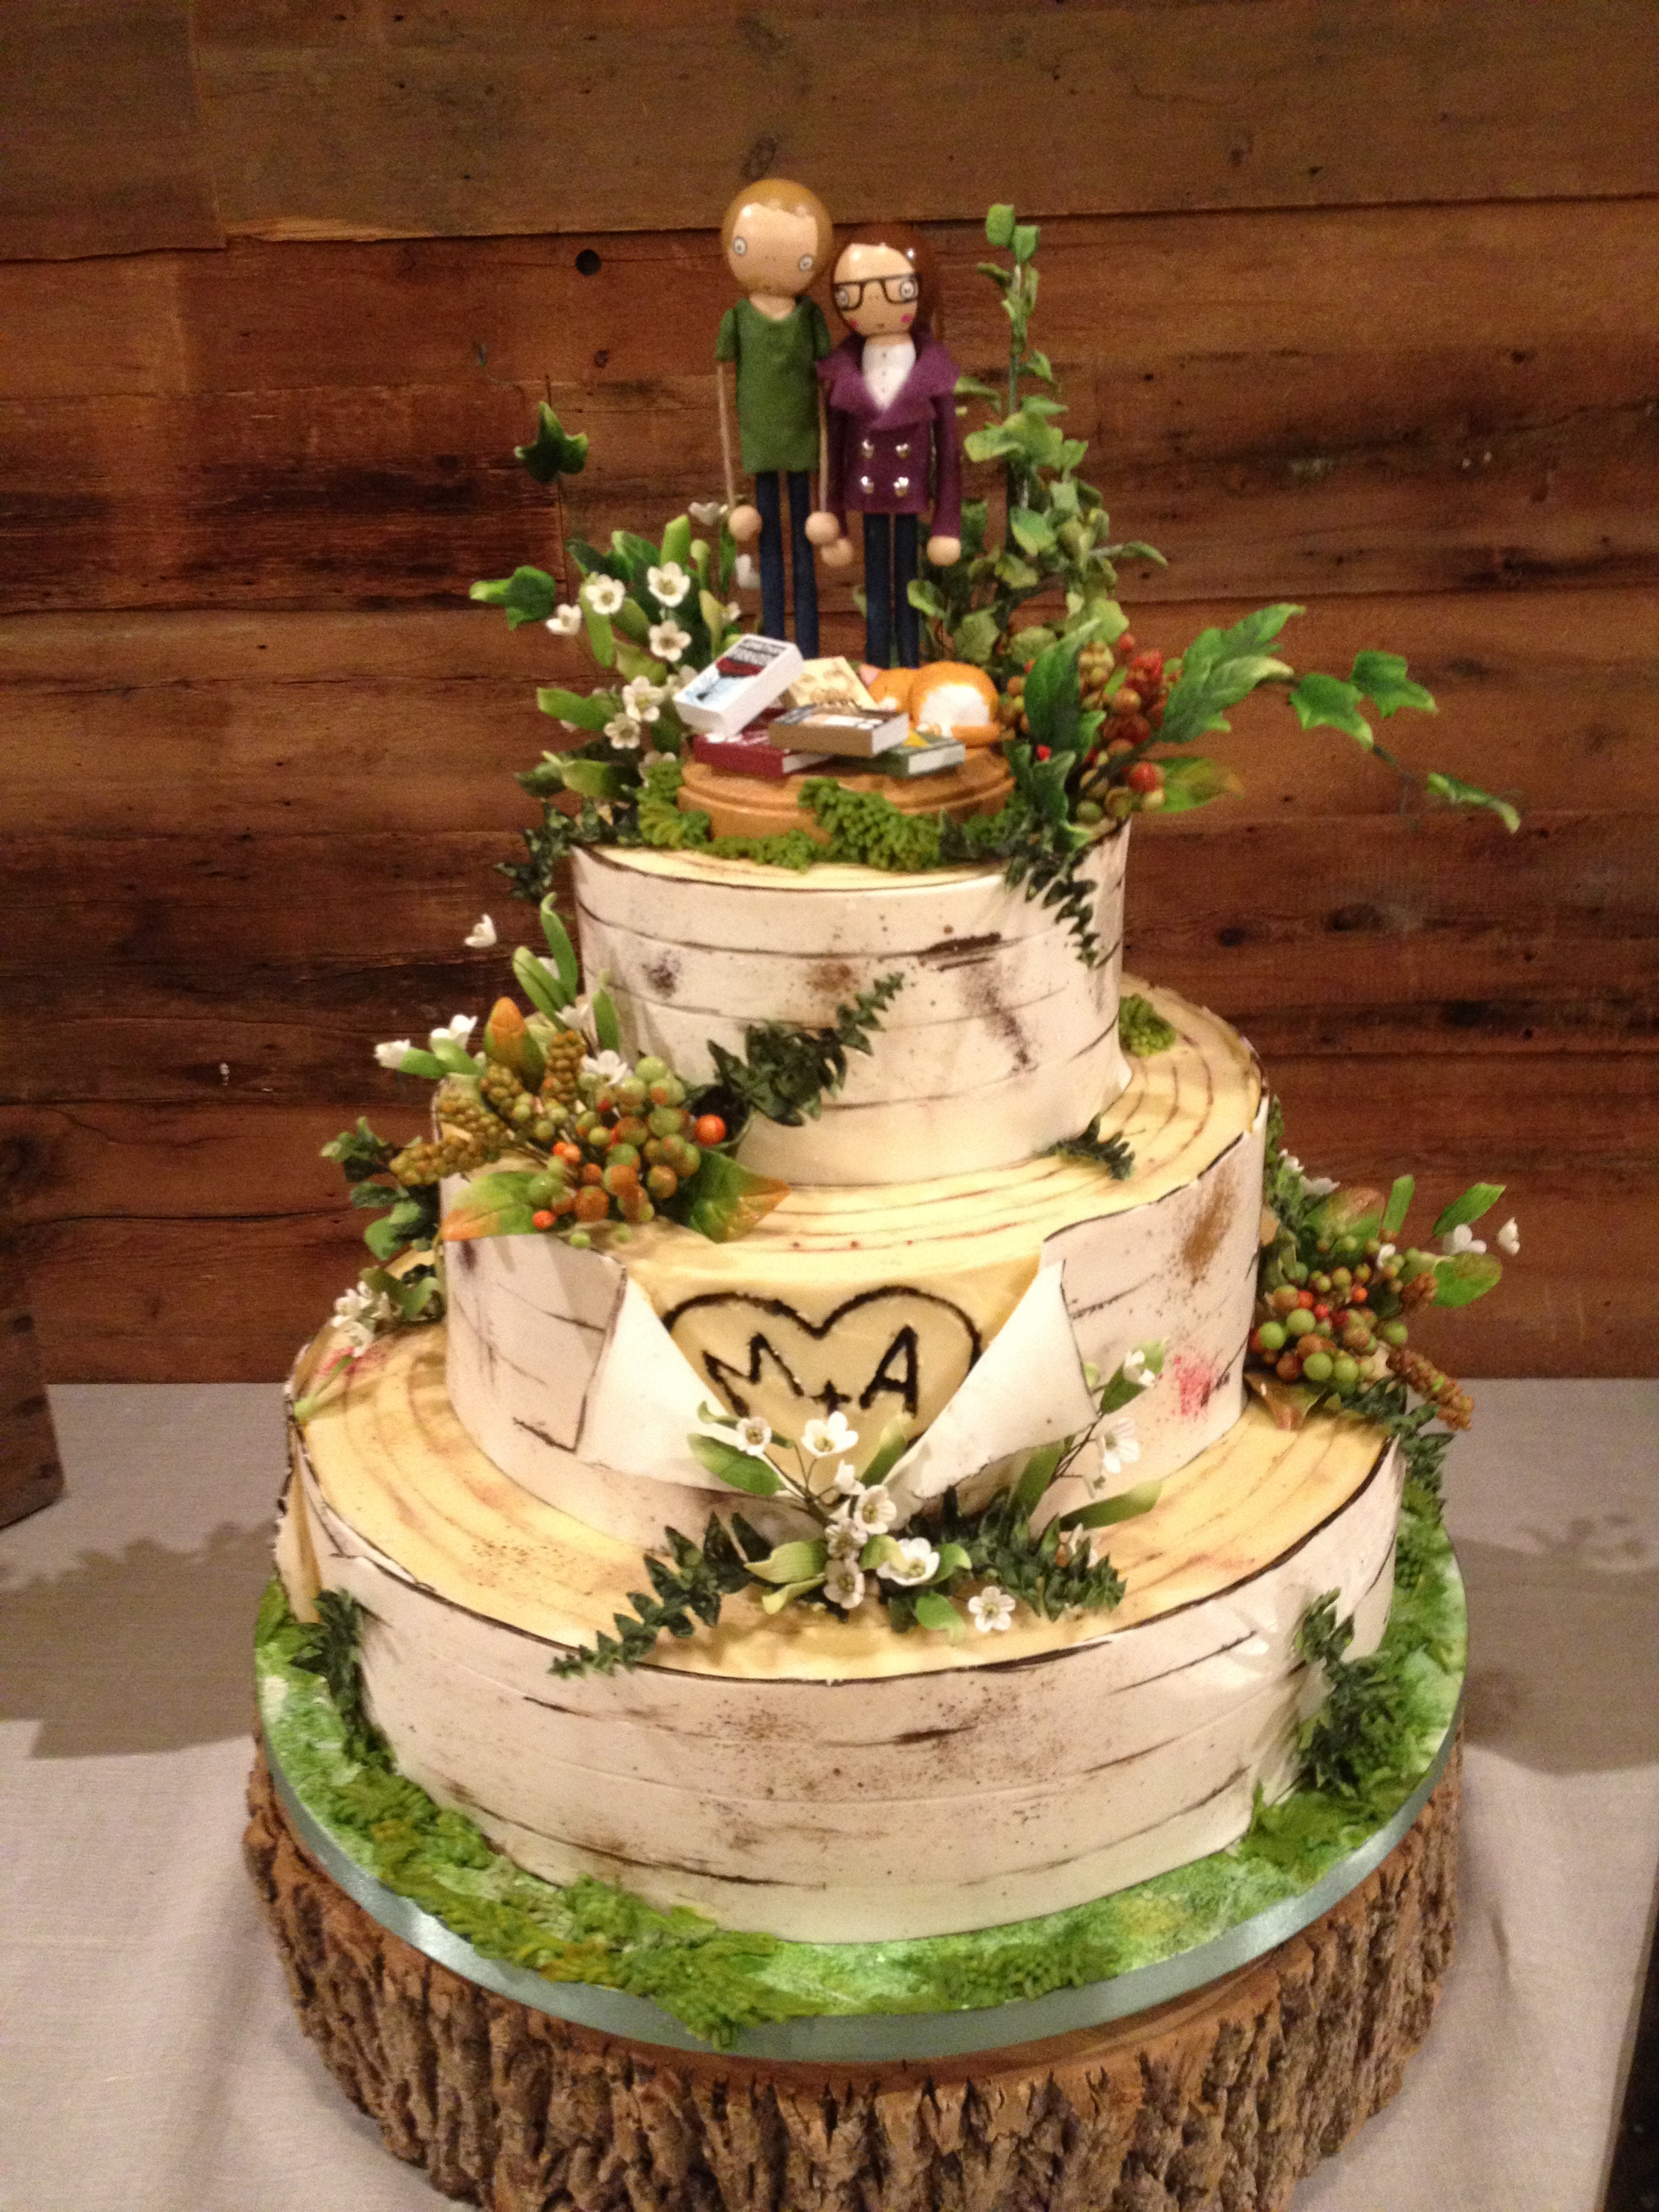 Wedding Cakes Vt  Weddings in Vermont Top Re mended Vendors in VT